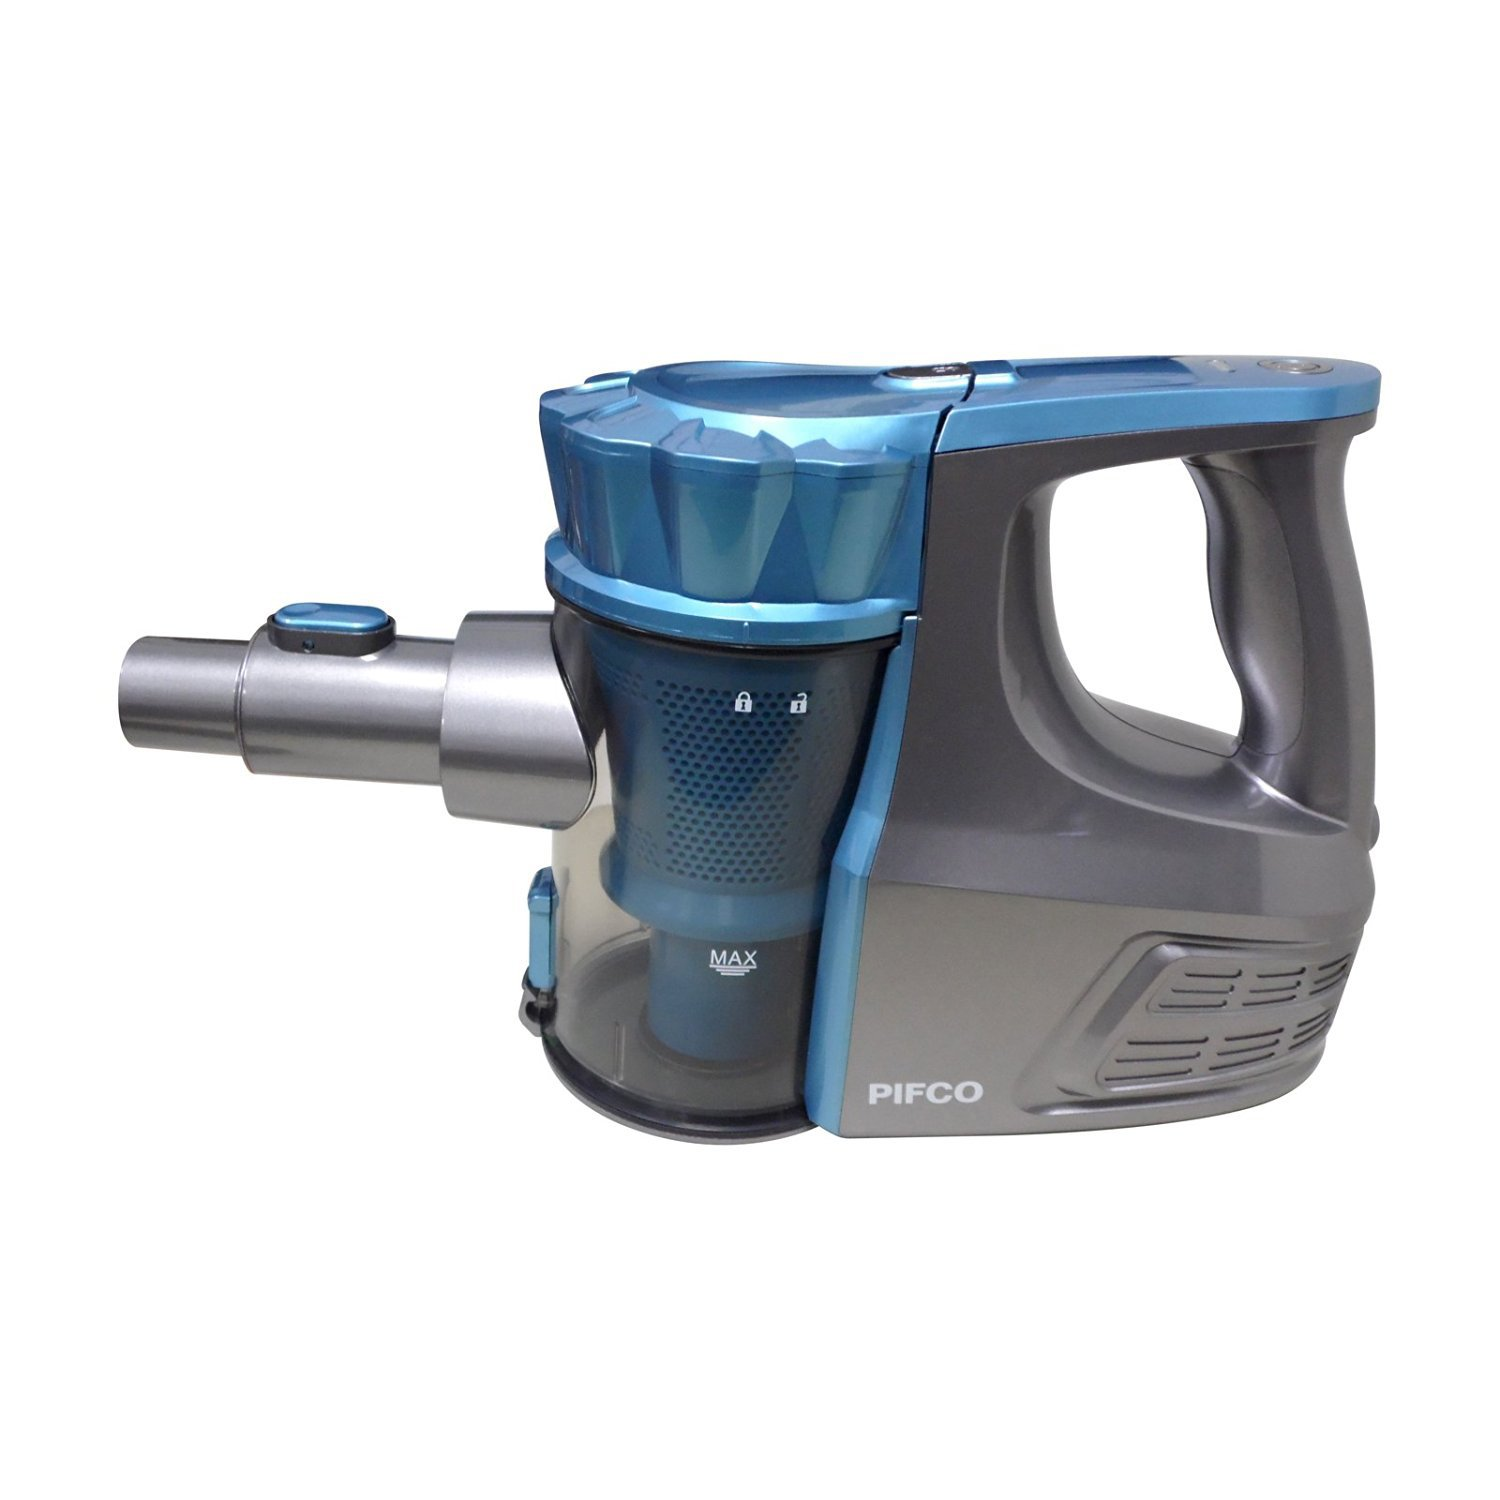 Pifco Cordless Rechargeable Handheld Vacuum At Barnitts